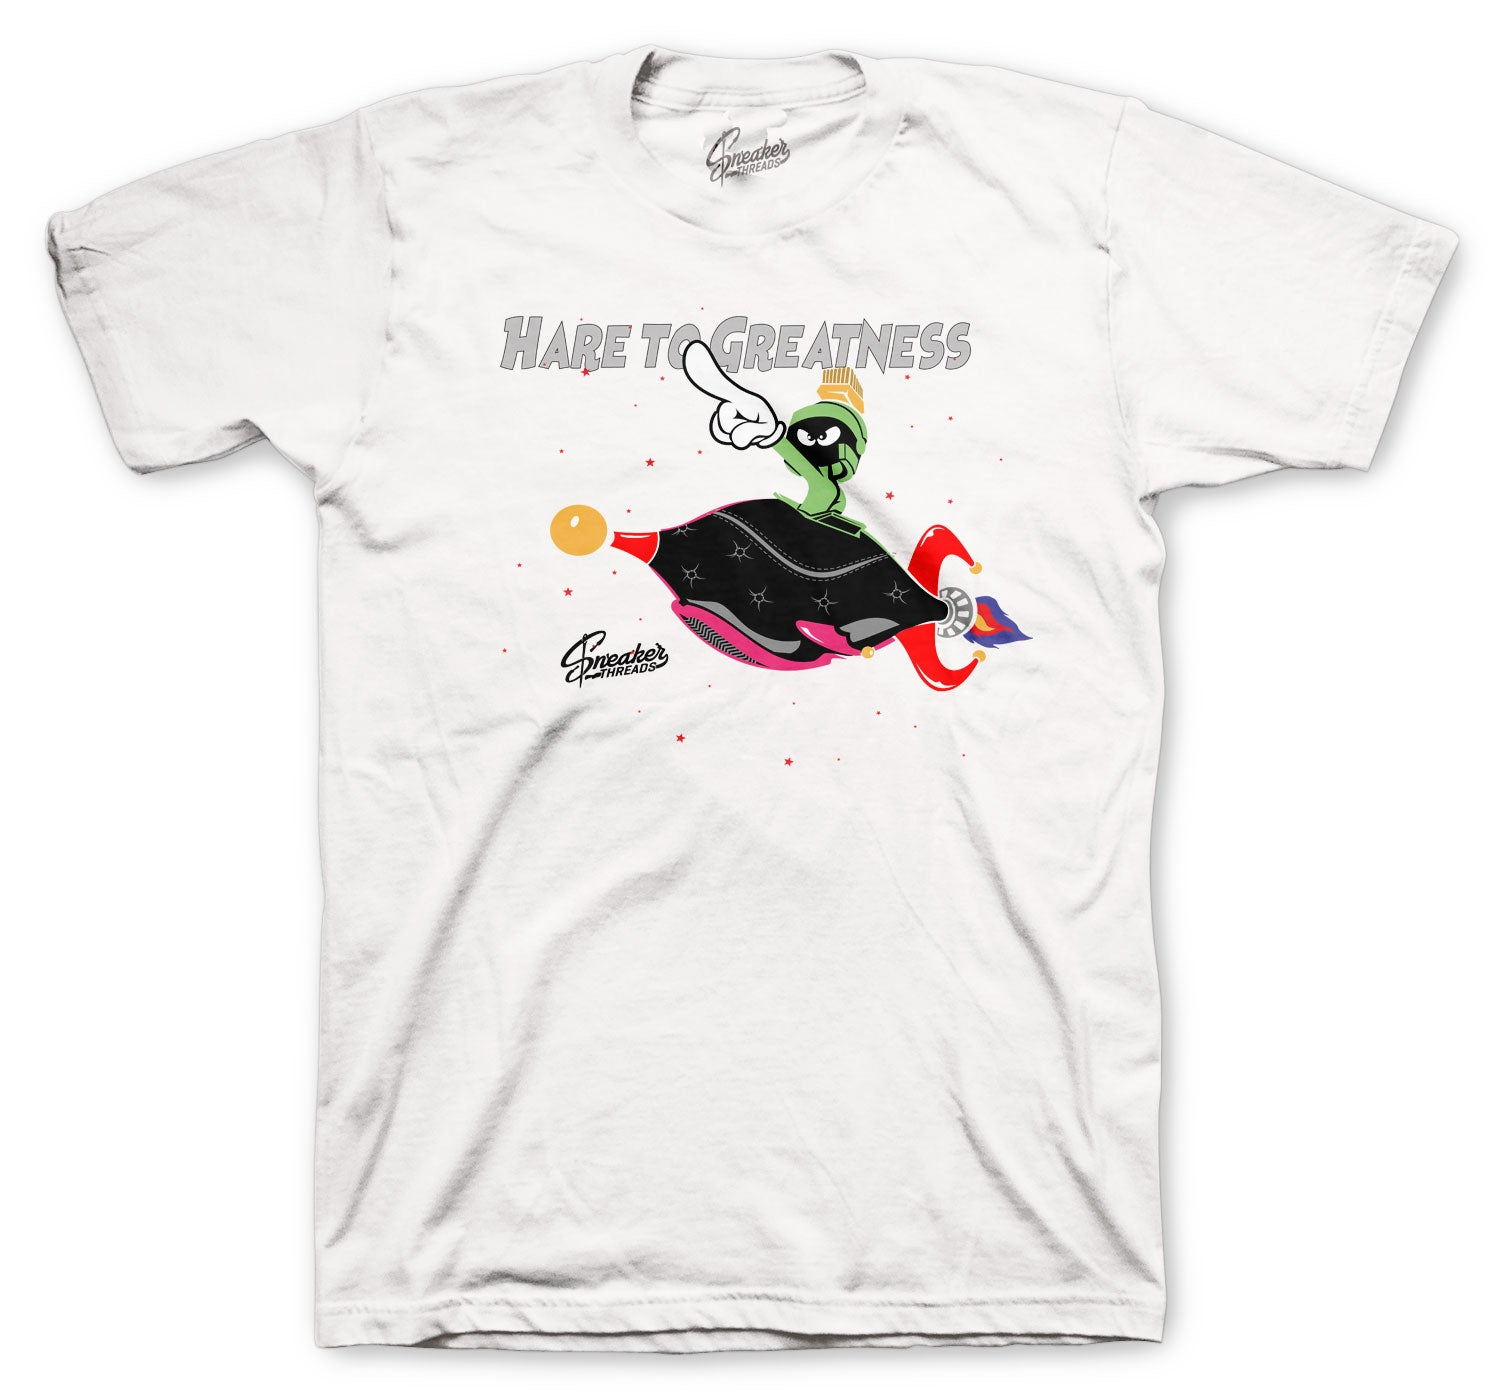 Jordan 6 Hare Shirt - Hare Greatness - White